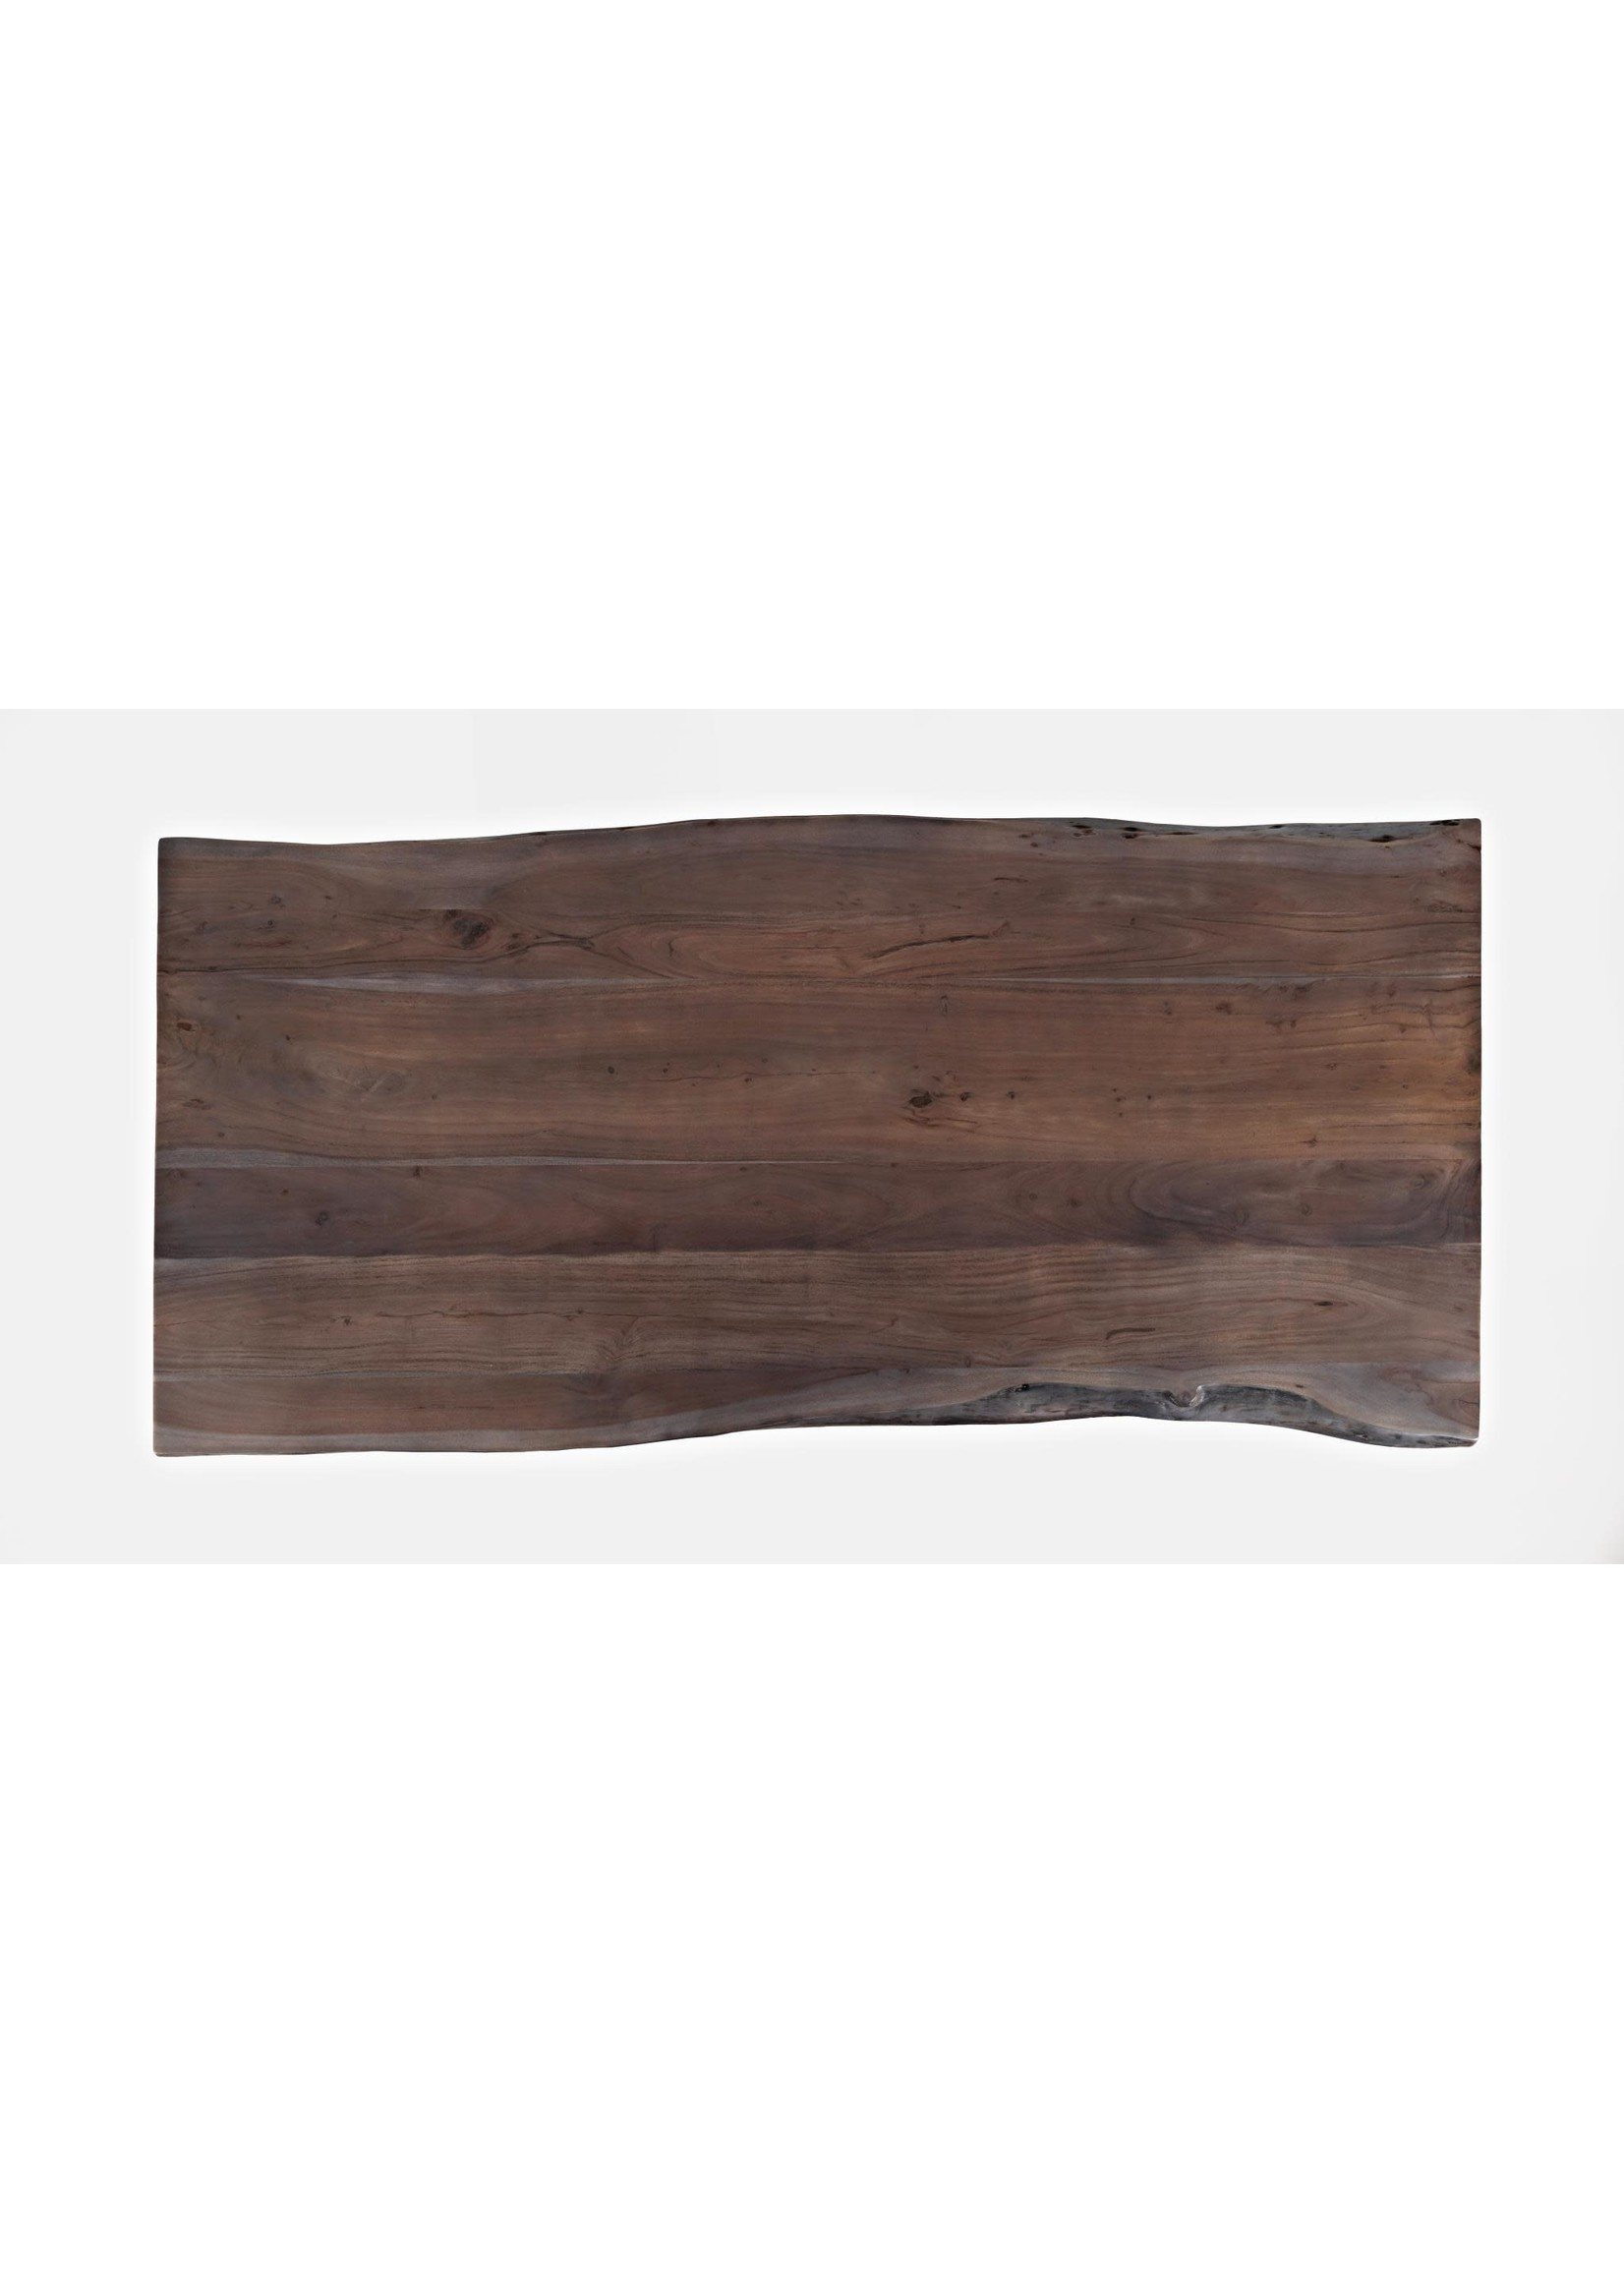 '=New Slate 79 Inch Dining Table 1981-79 JO